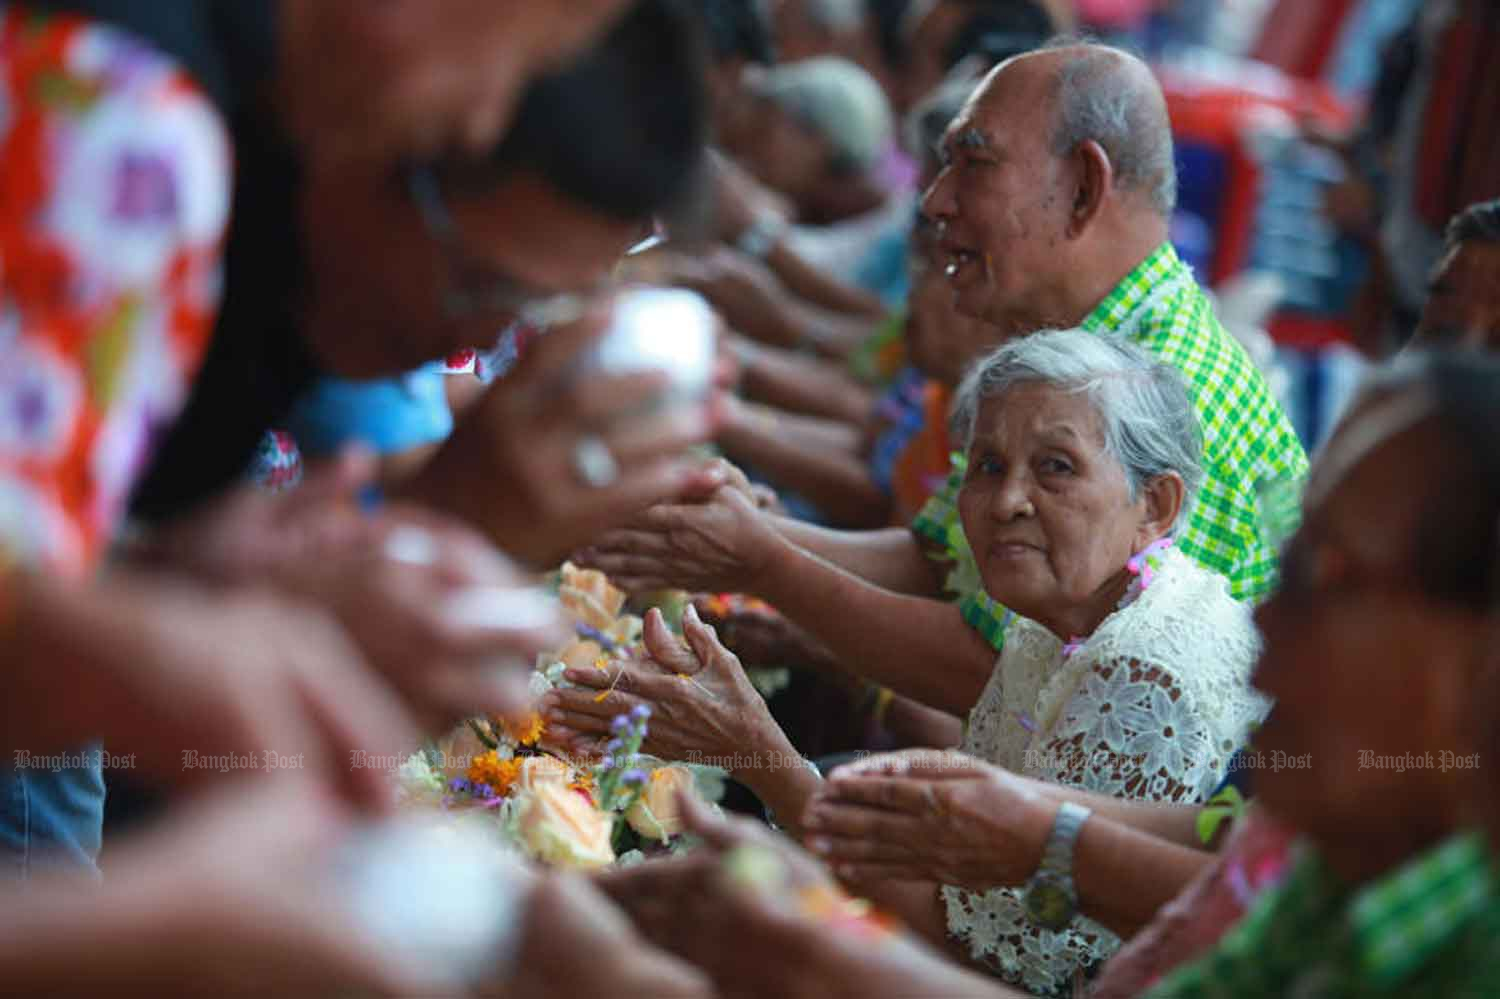 Thai people traditionally extend their best wishes to elderly people during the Songkran festival. (Bangkok Post file photo)